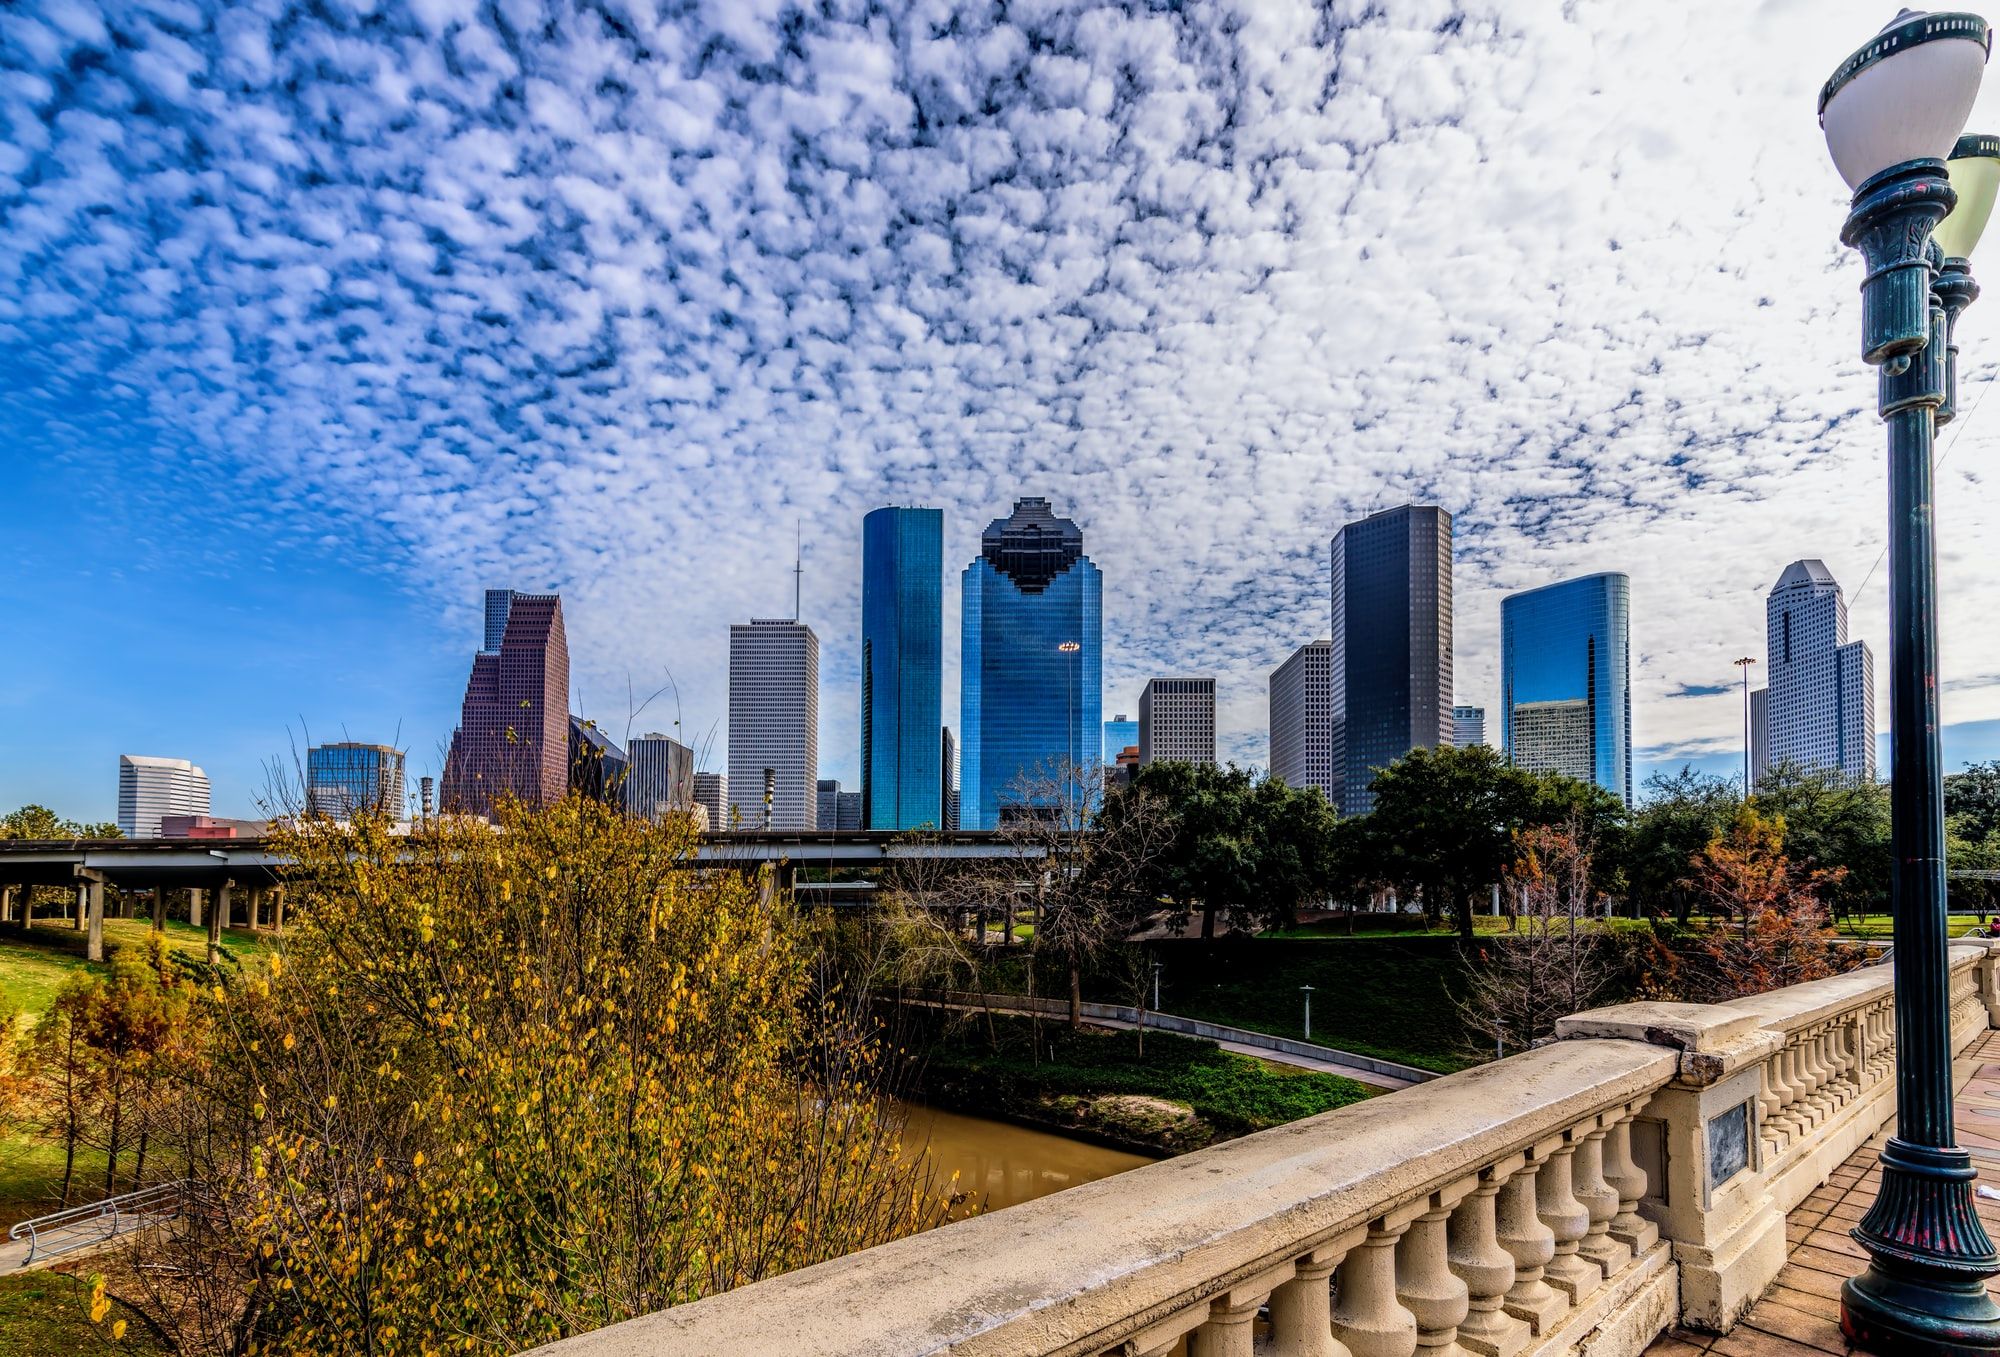 Things to do in Houston— Attractions, places to visit, and activities.